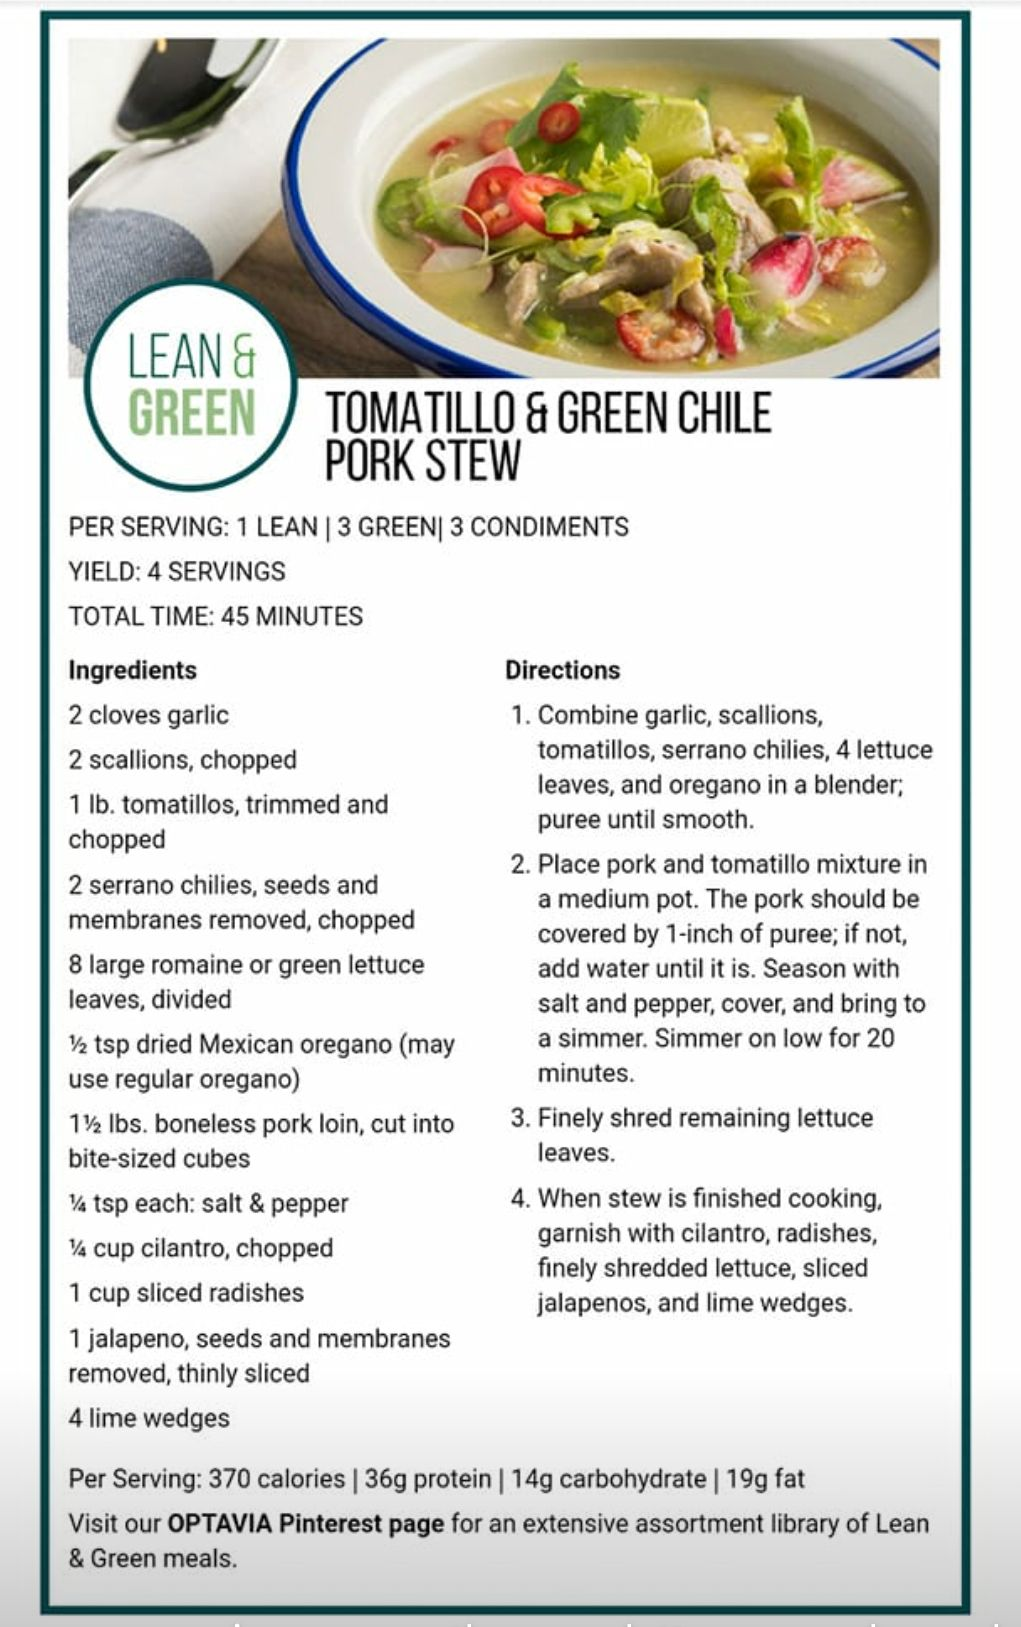 Image Result For Optavia Lean And Green Lean Protein Meals Lean And Green Meals Greens Recipe